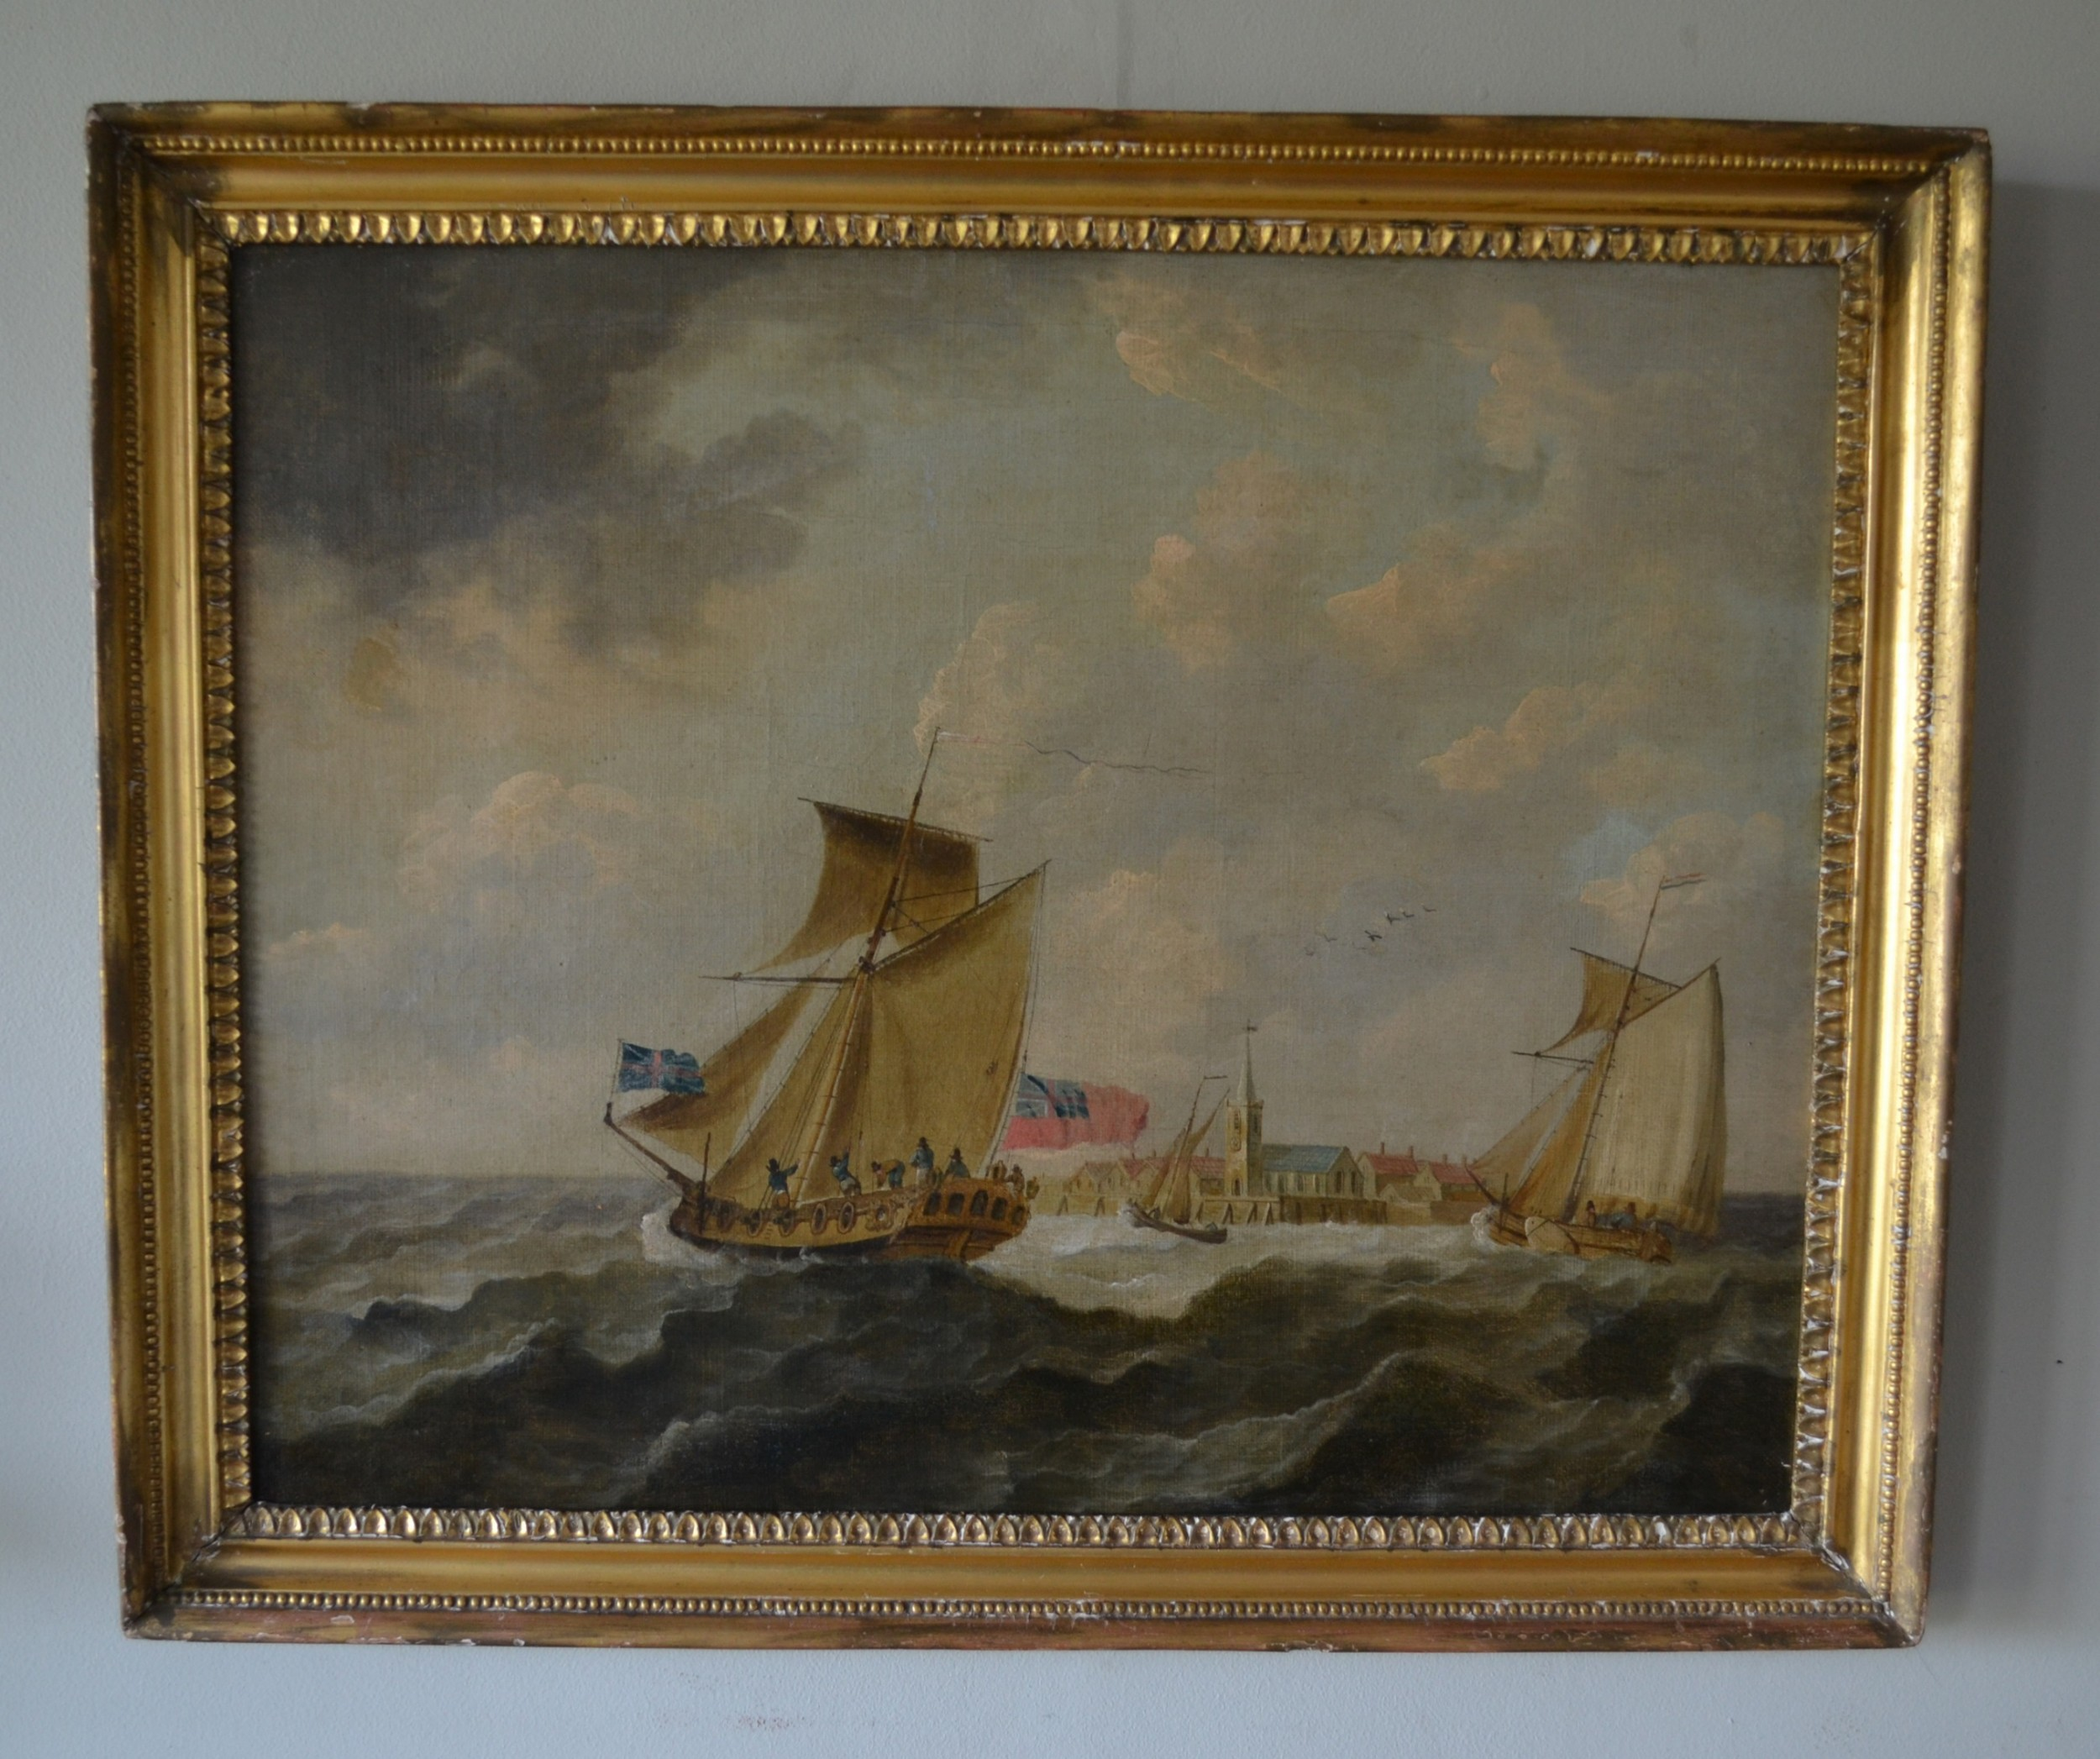 fishing boats in choppy water seascape c1870 manner of samuel calvert oil on canvas